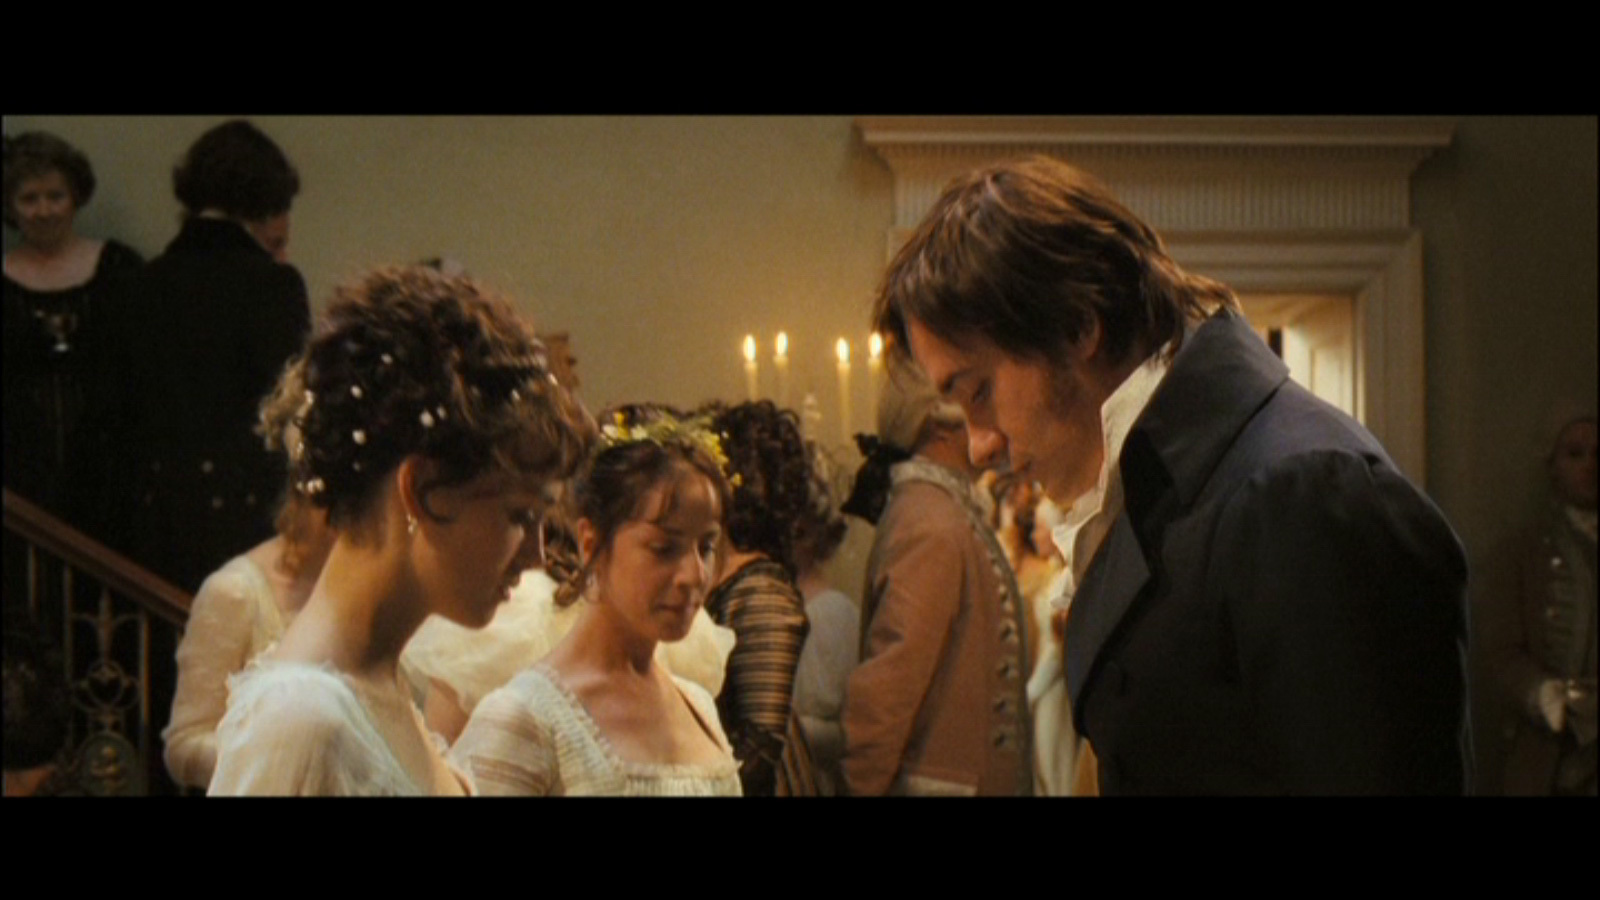 pride and prejudice and mr darcy Character analysis: mr darcy introduced to jane austen's pride and prejudice as a tall, handsome, self-absorbed aristocrat, darcy experiences a change in personality and character.